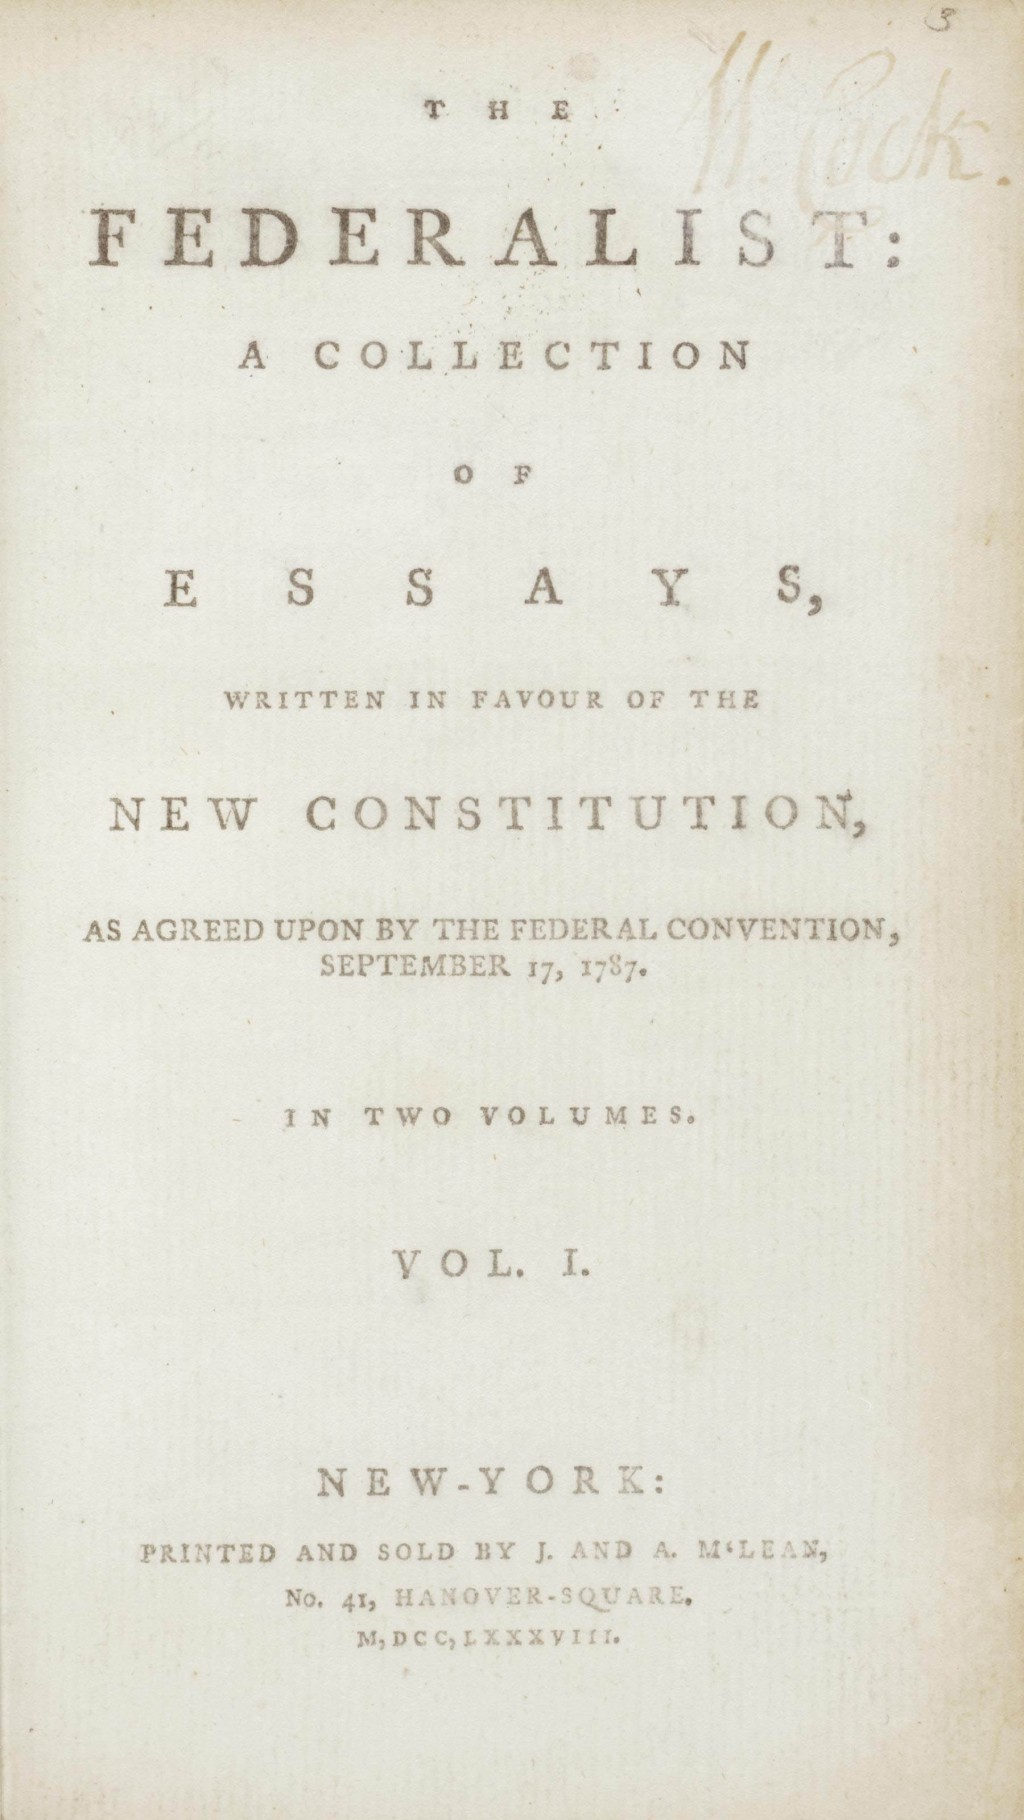 016 Essay Example Alexander Hamilton Essays 2012 Nyr 02622 0043 000the Federalist Papers  James Madison And John Jay Frightening 51 78 Did WroteLarge